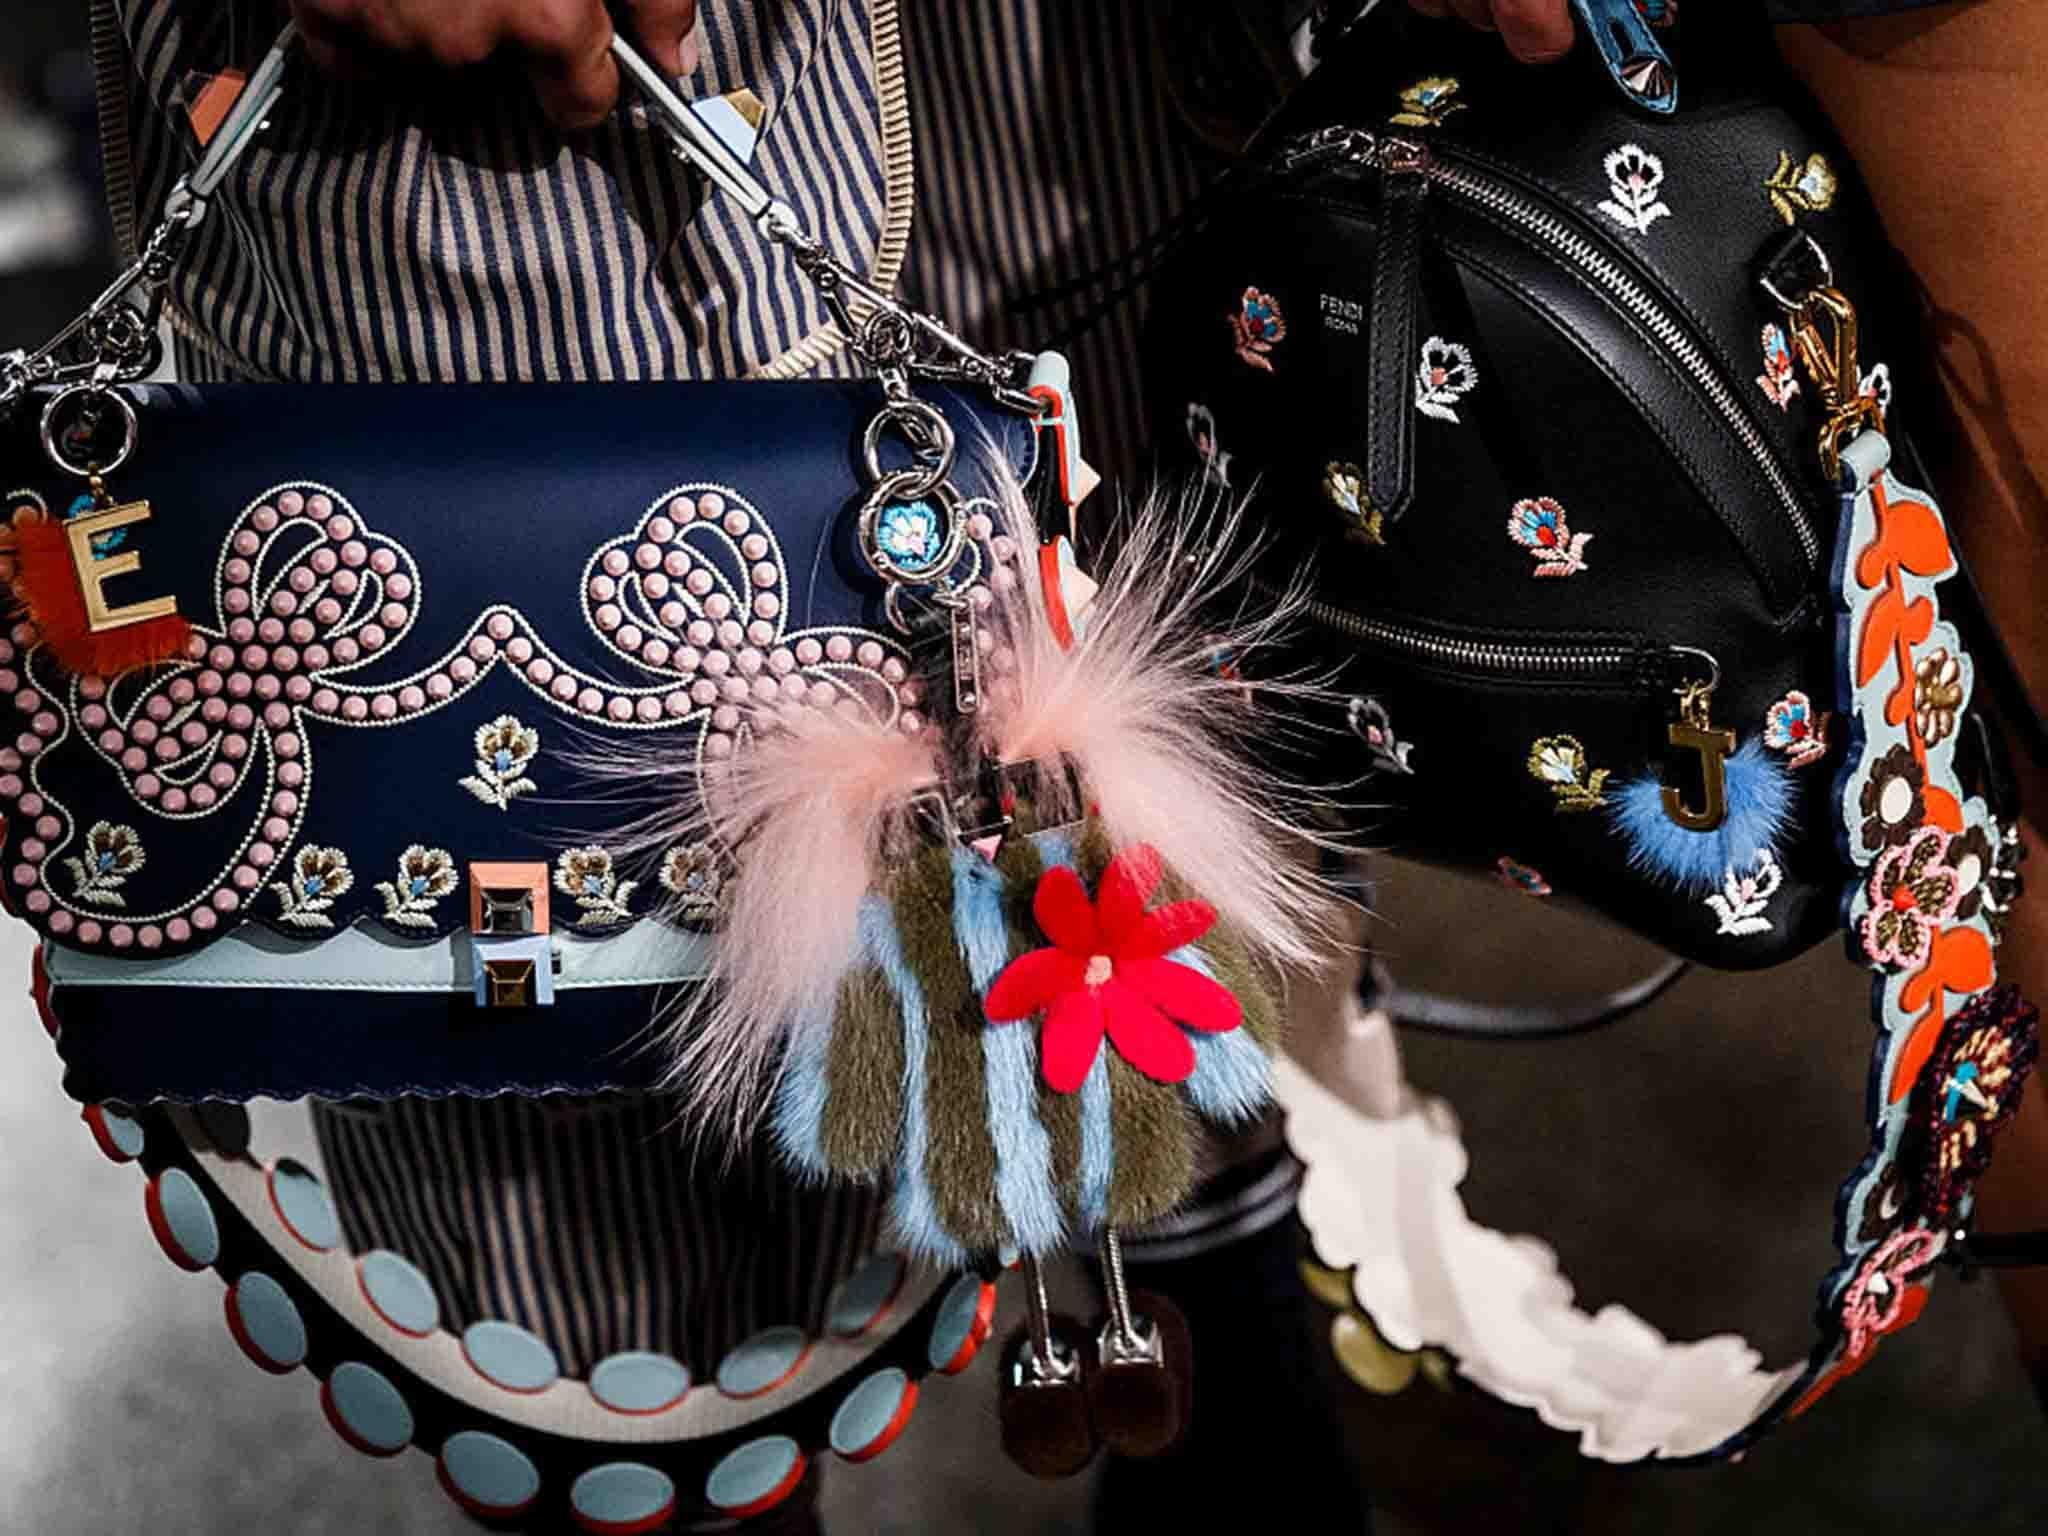 966ec4820b3564 Bag charms: The must-have accessory trend for spring 2017 | The Independent